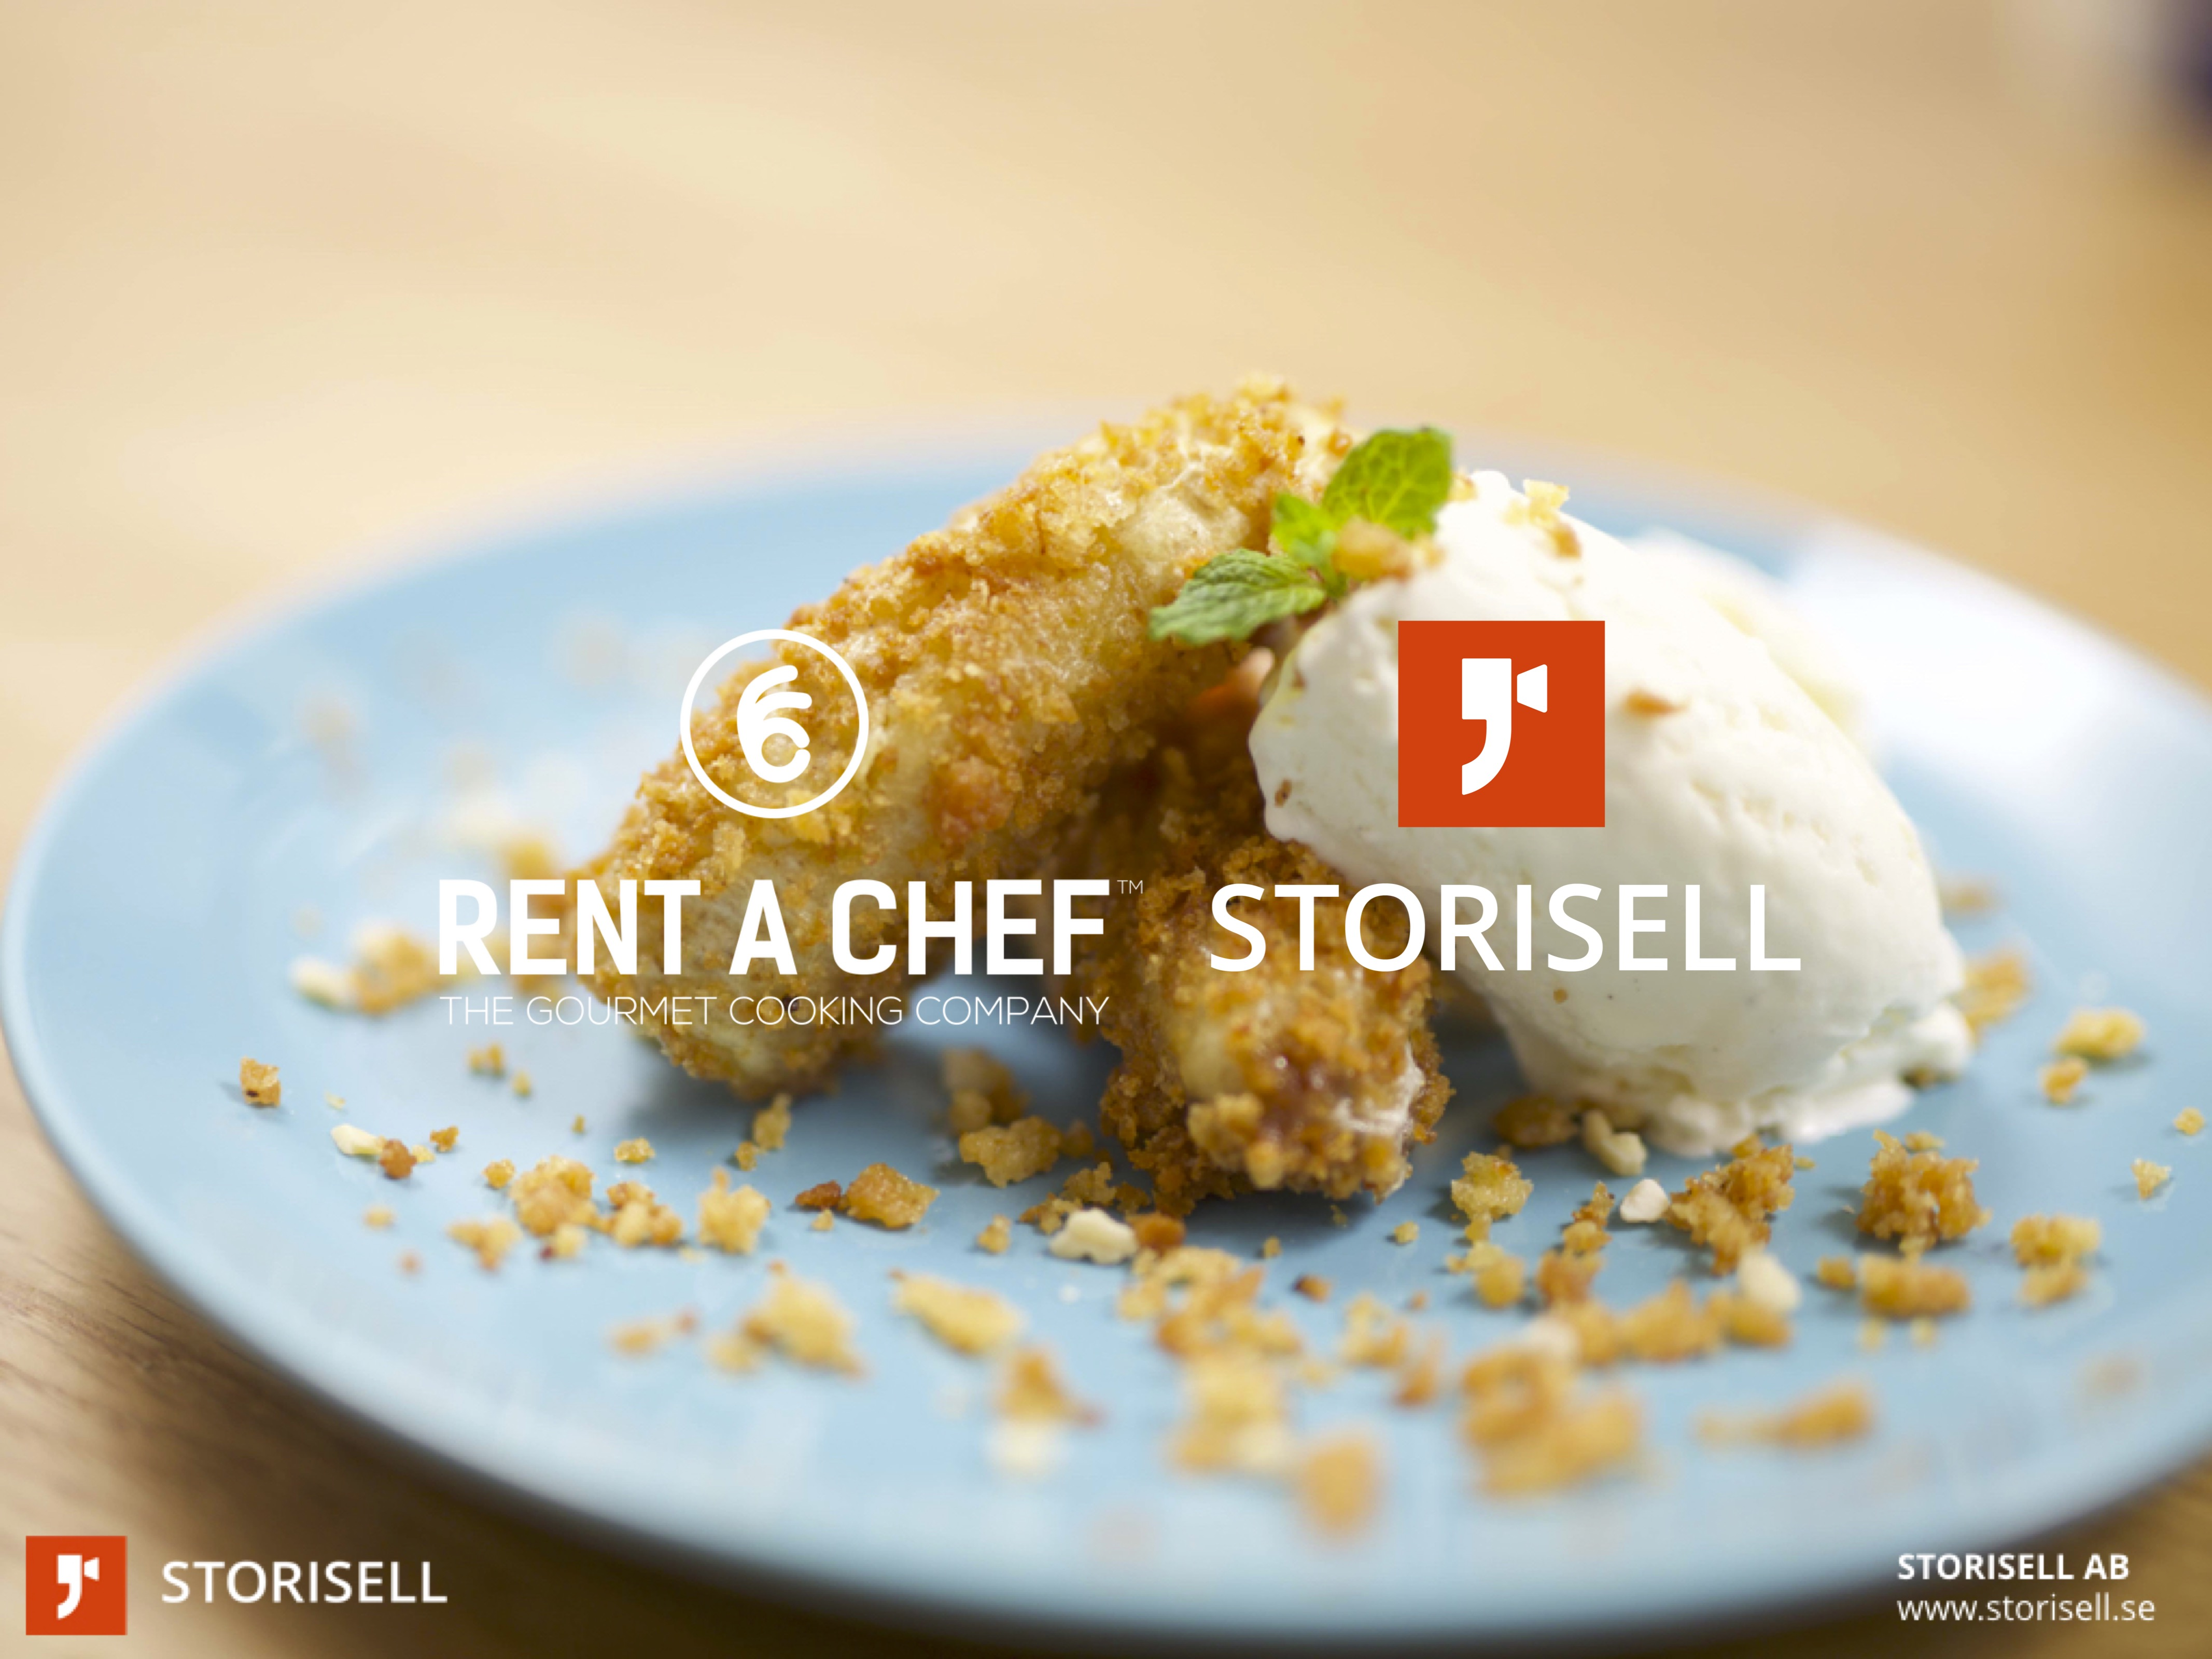 Storisell and Rent a Chef launches partnership